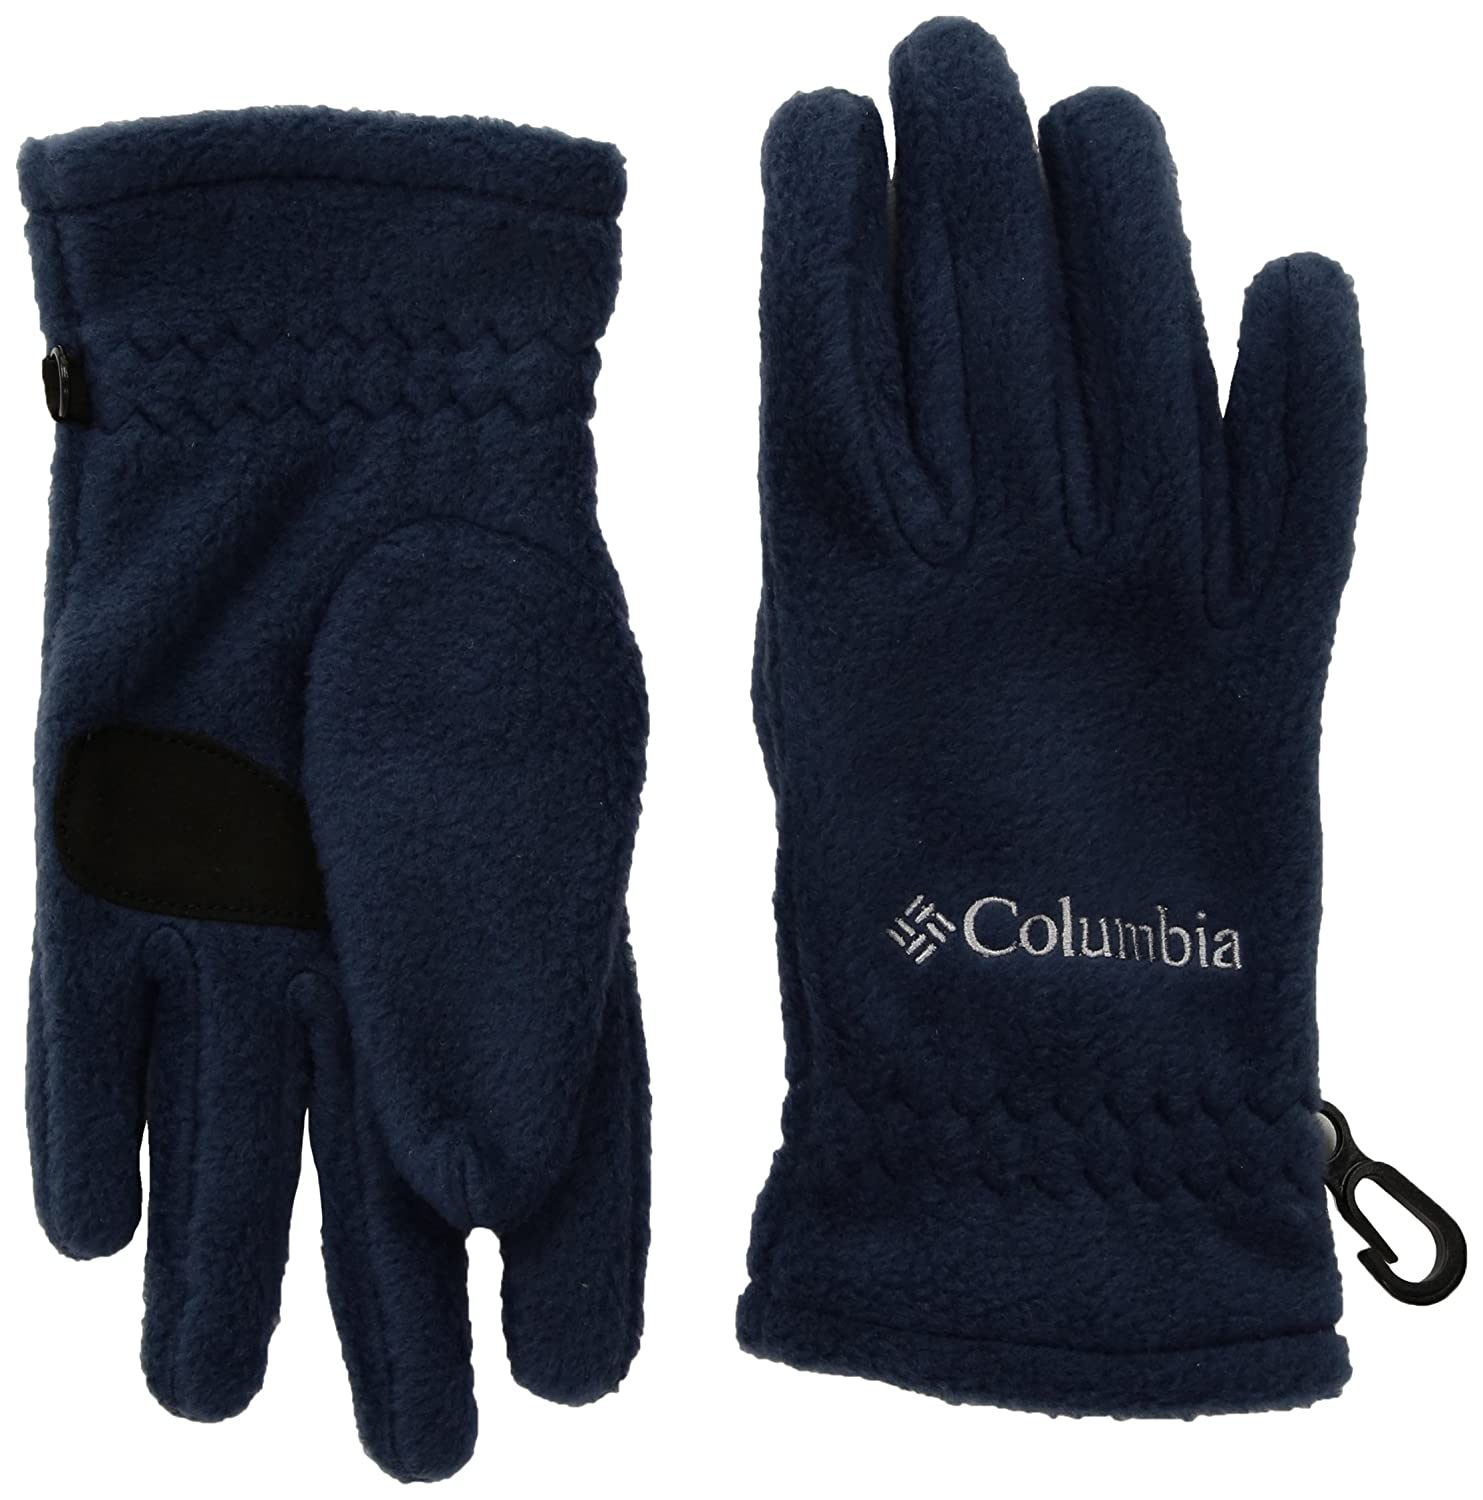 Columbia Kid's Youth Fast Trek Glove Accessory Collegiate Navy Large 1555701